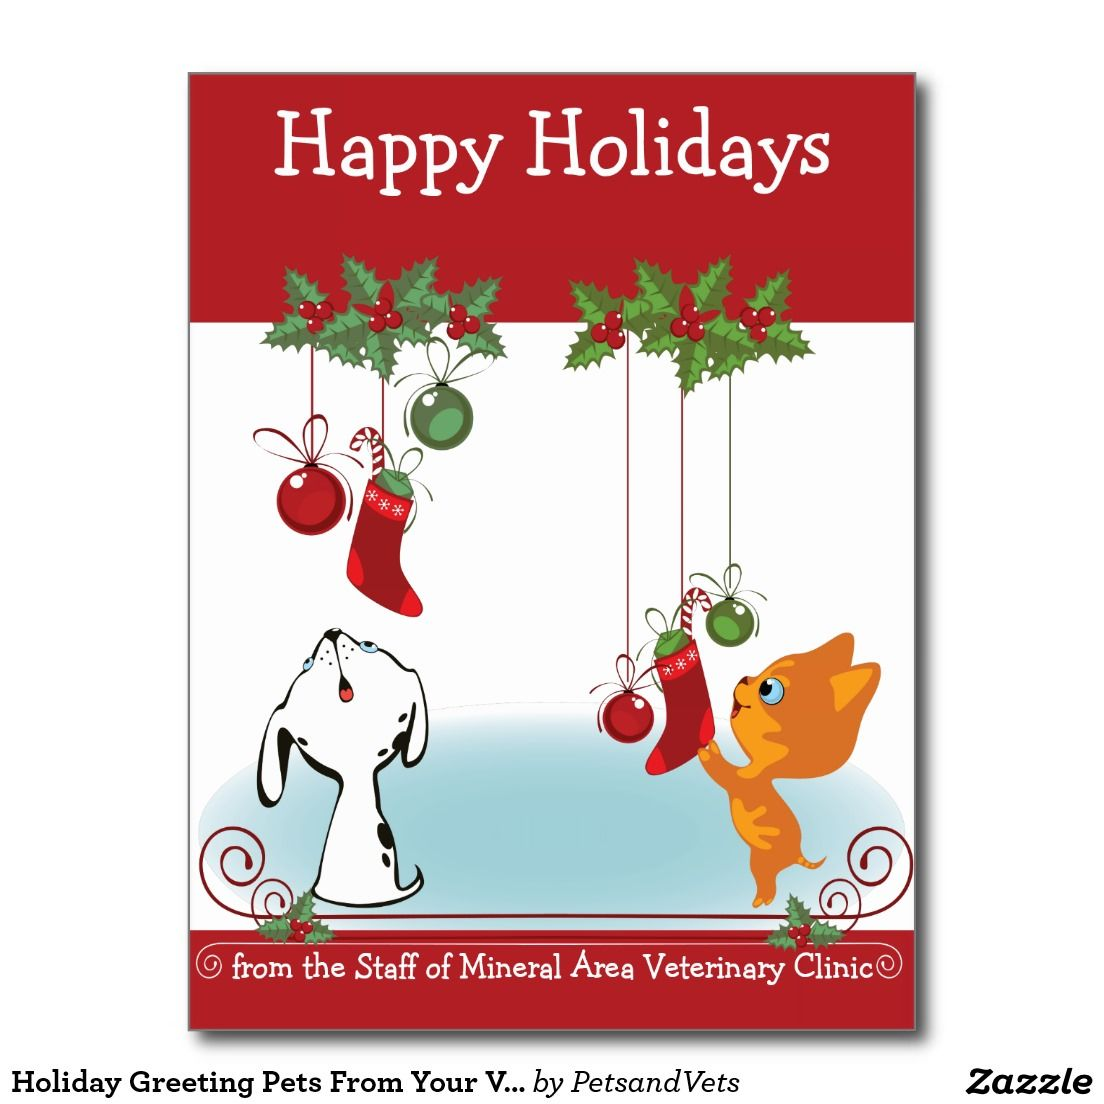 Holiday Greeting Pets From Your Veterinary Clinic Zazzle Com Pet Holiday Cards Holiday Greetings Business Holiday Cards